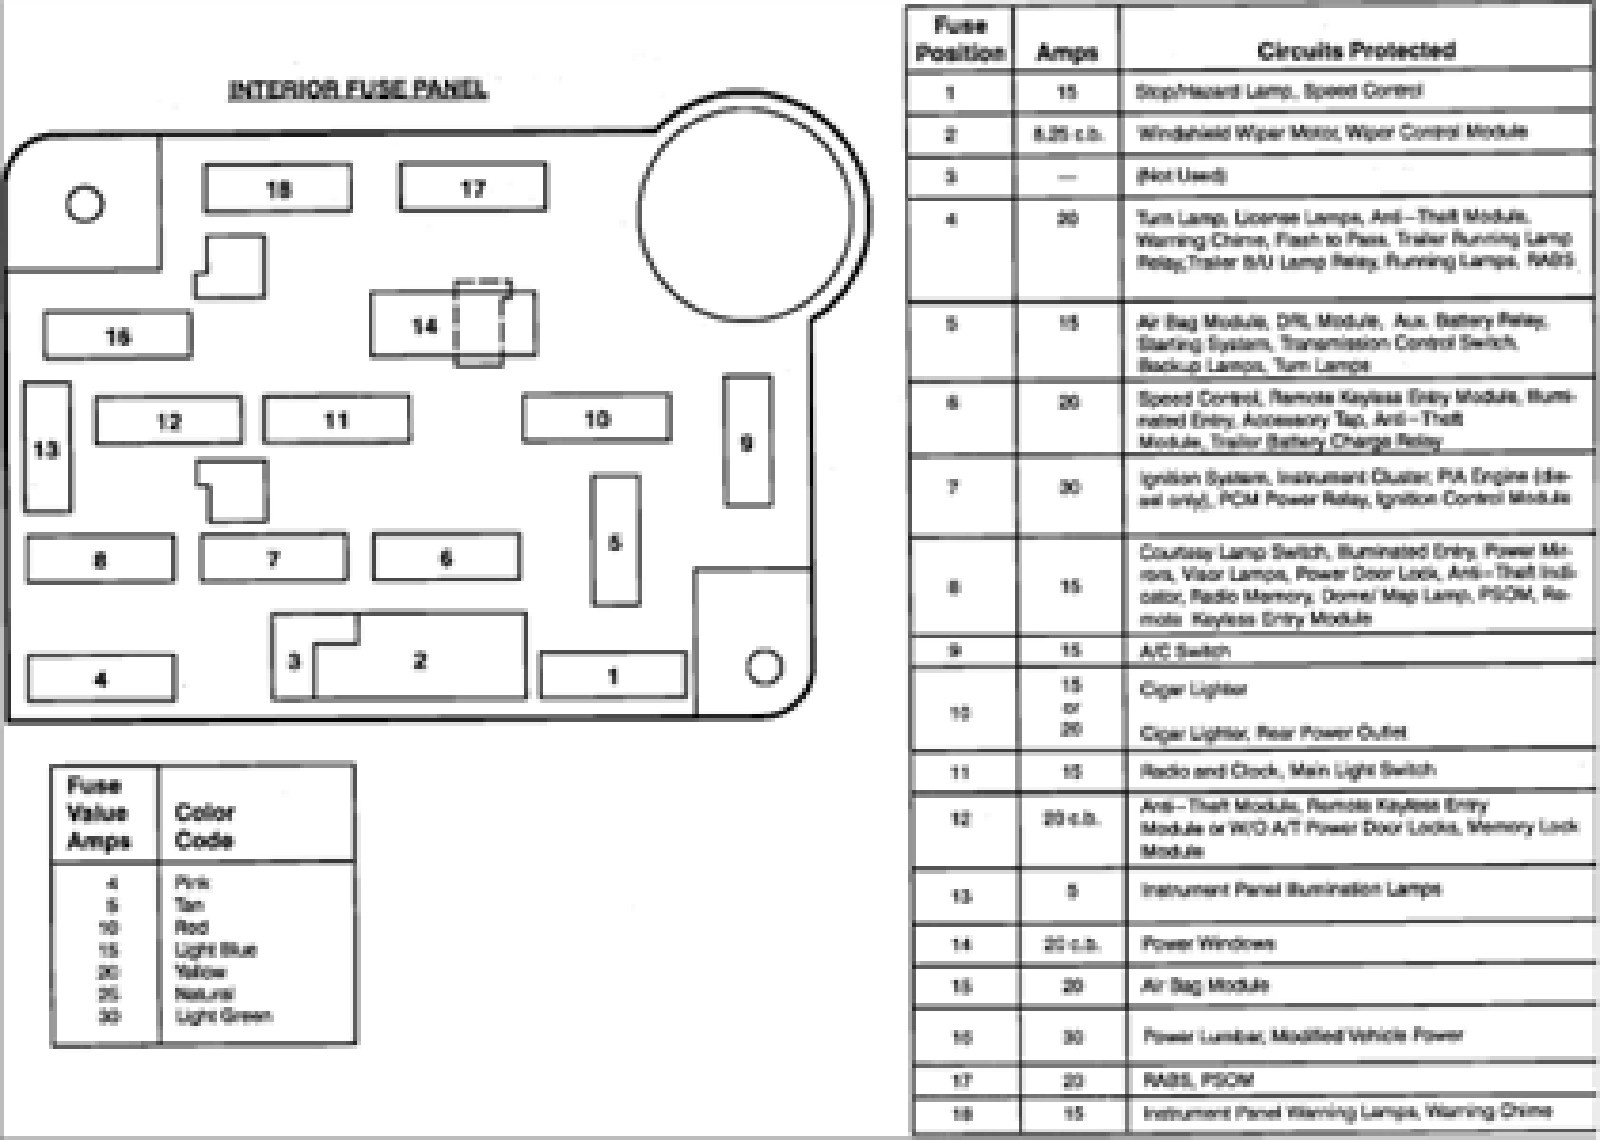 hight resolution of 93 ford ranger fuse box wiring diagram 1989 ford ranger 2 9 v6 fuse box diagram 1989 ford ranger fuse box diagram